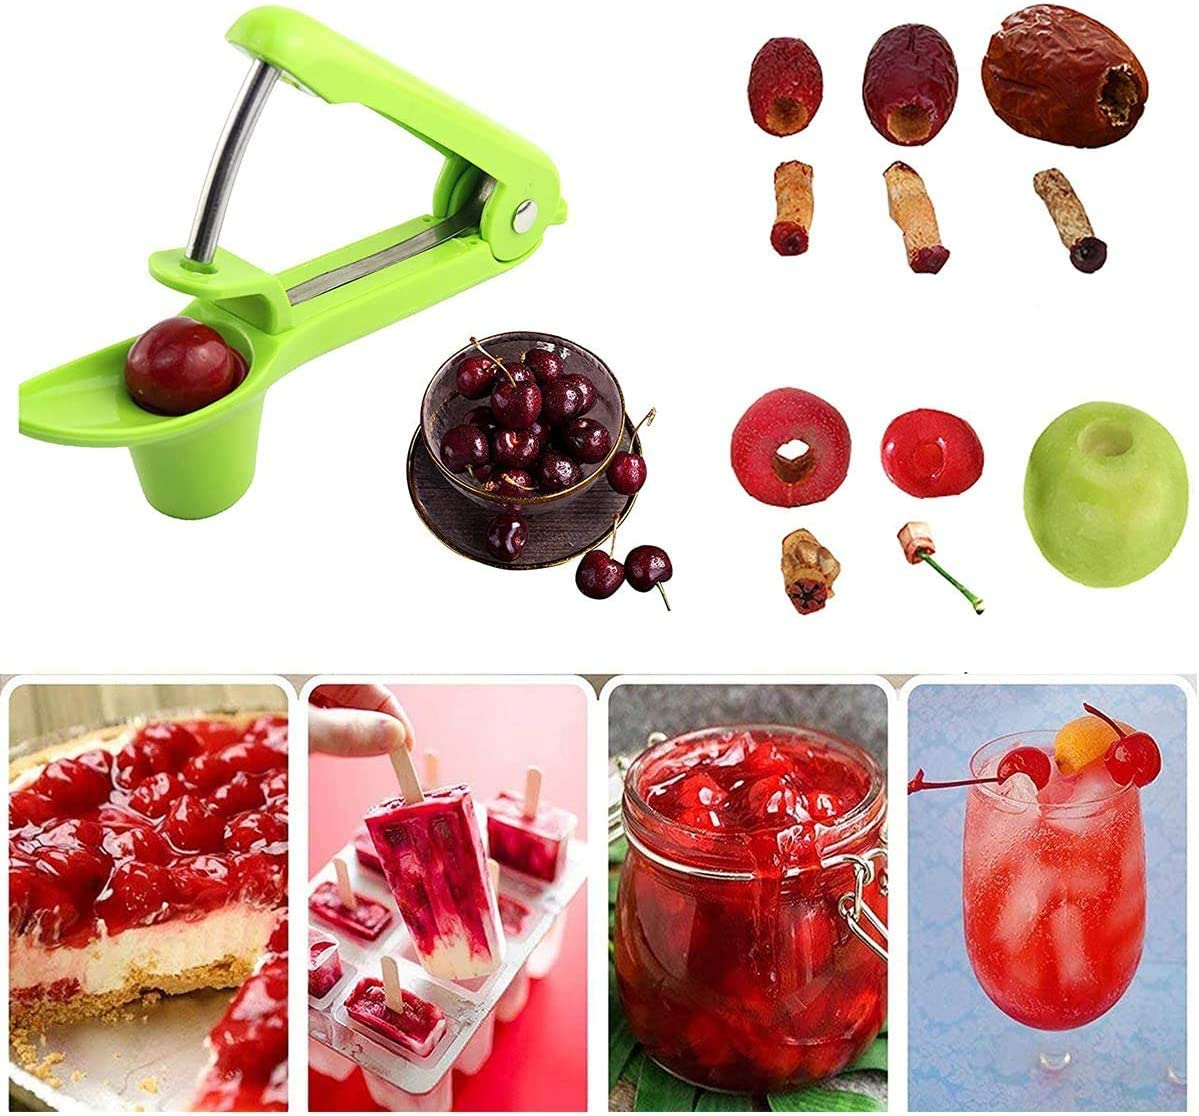 Cherry Multi-Function Fruit Corer and Pitter Remover Portable Olive and Cherry Pitter Remover Jujube and Red Date,Green Suitable for Home Kitchen Cherry Pitter Tool